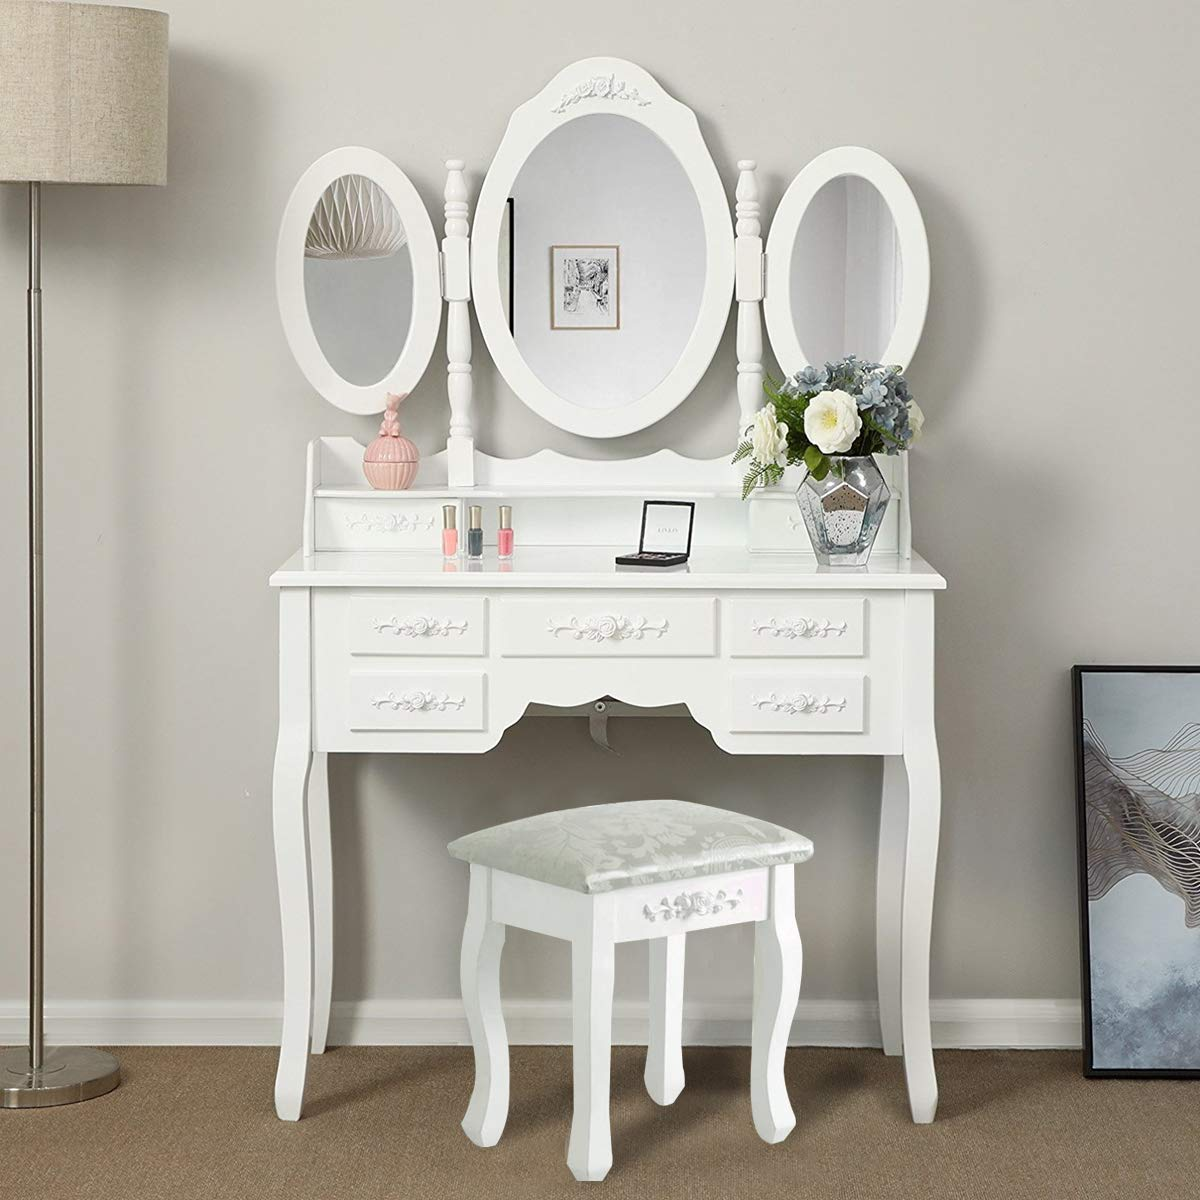 Boju White Dressing Table With Trifold Mirrors And 7 Storage Drawers And Stool Set Bedroom Fancy Makeup Vanity Table Desk For Ladies Gift Buy Online In Grenada At Grenada Desertcart Com Productid 156355083